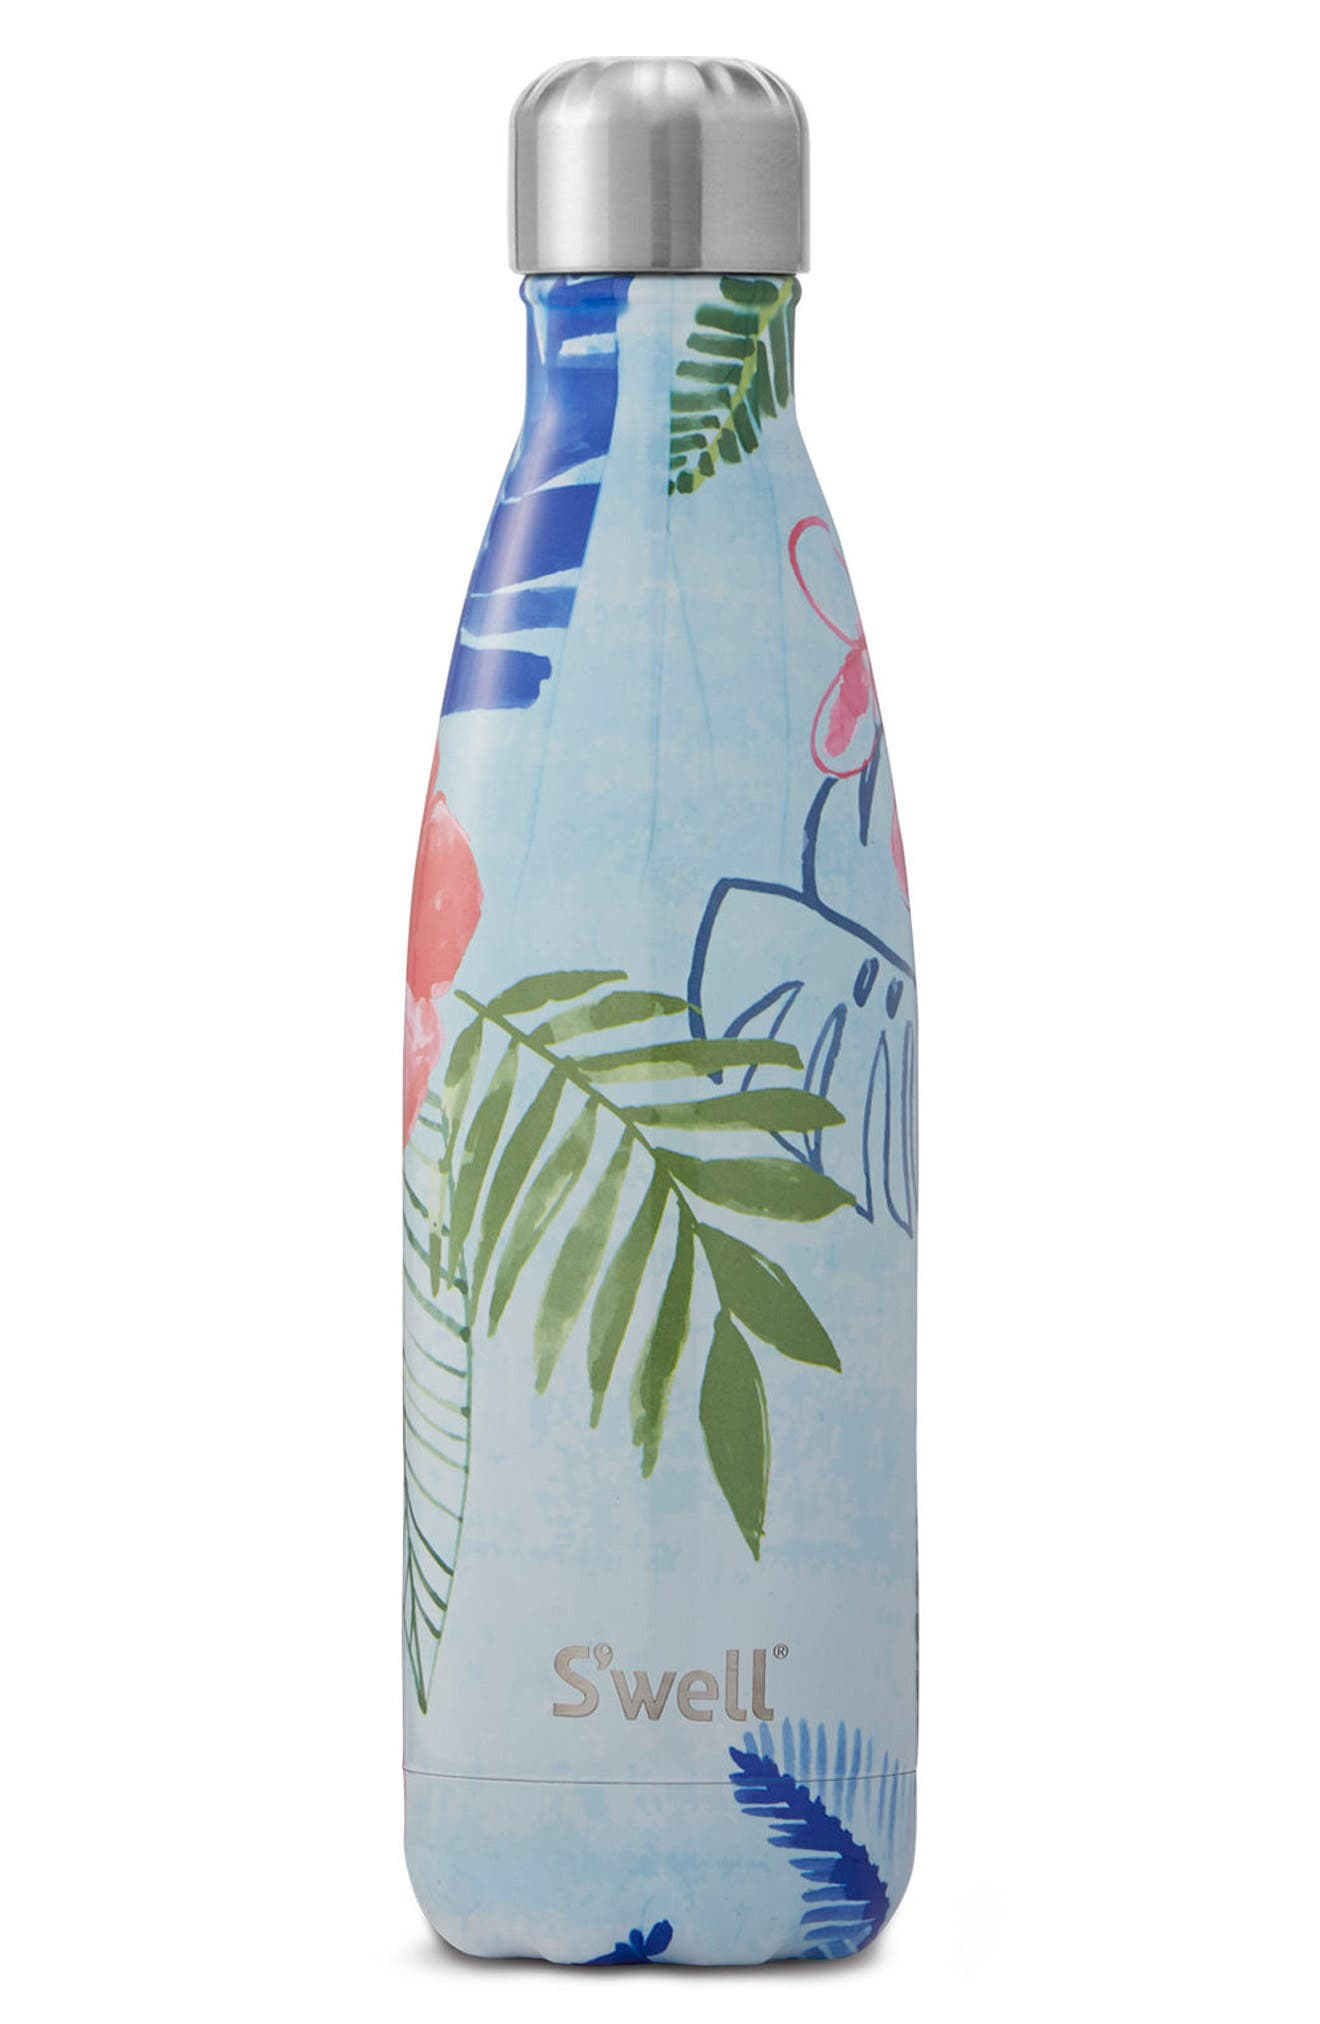 S'well Oahu Insulated Stainless Steel Water Bottle